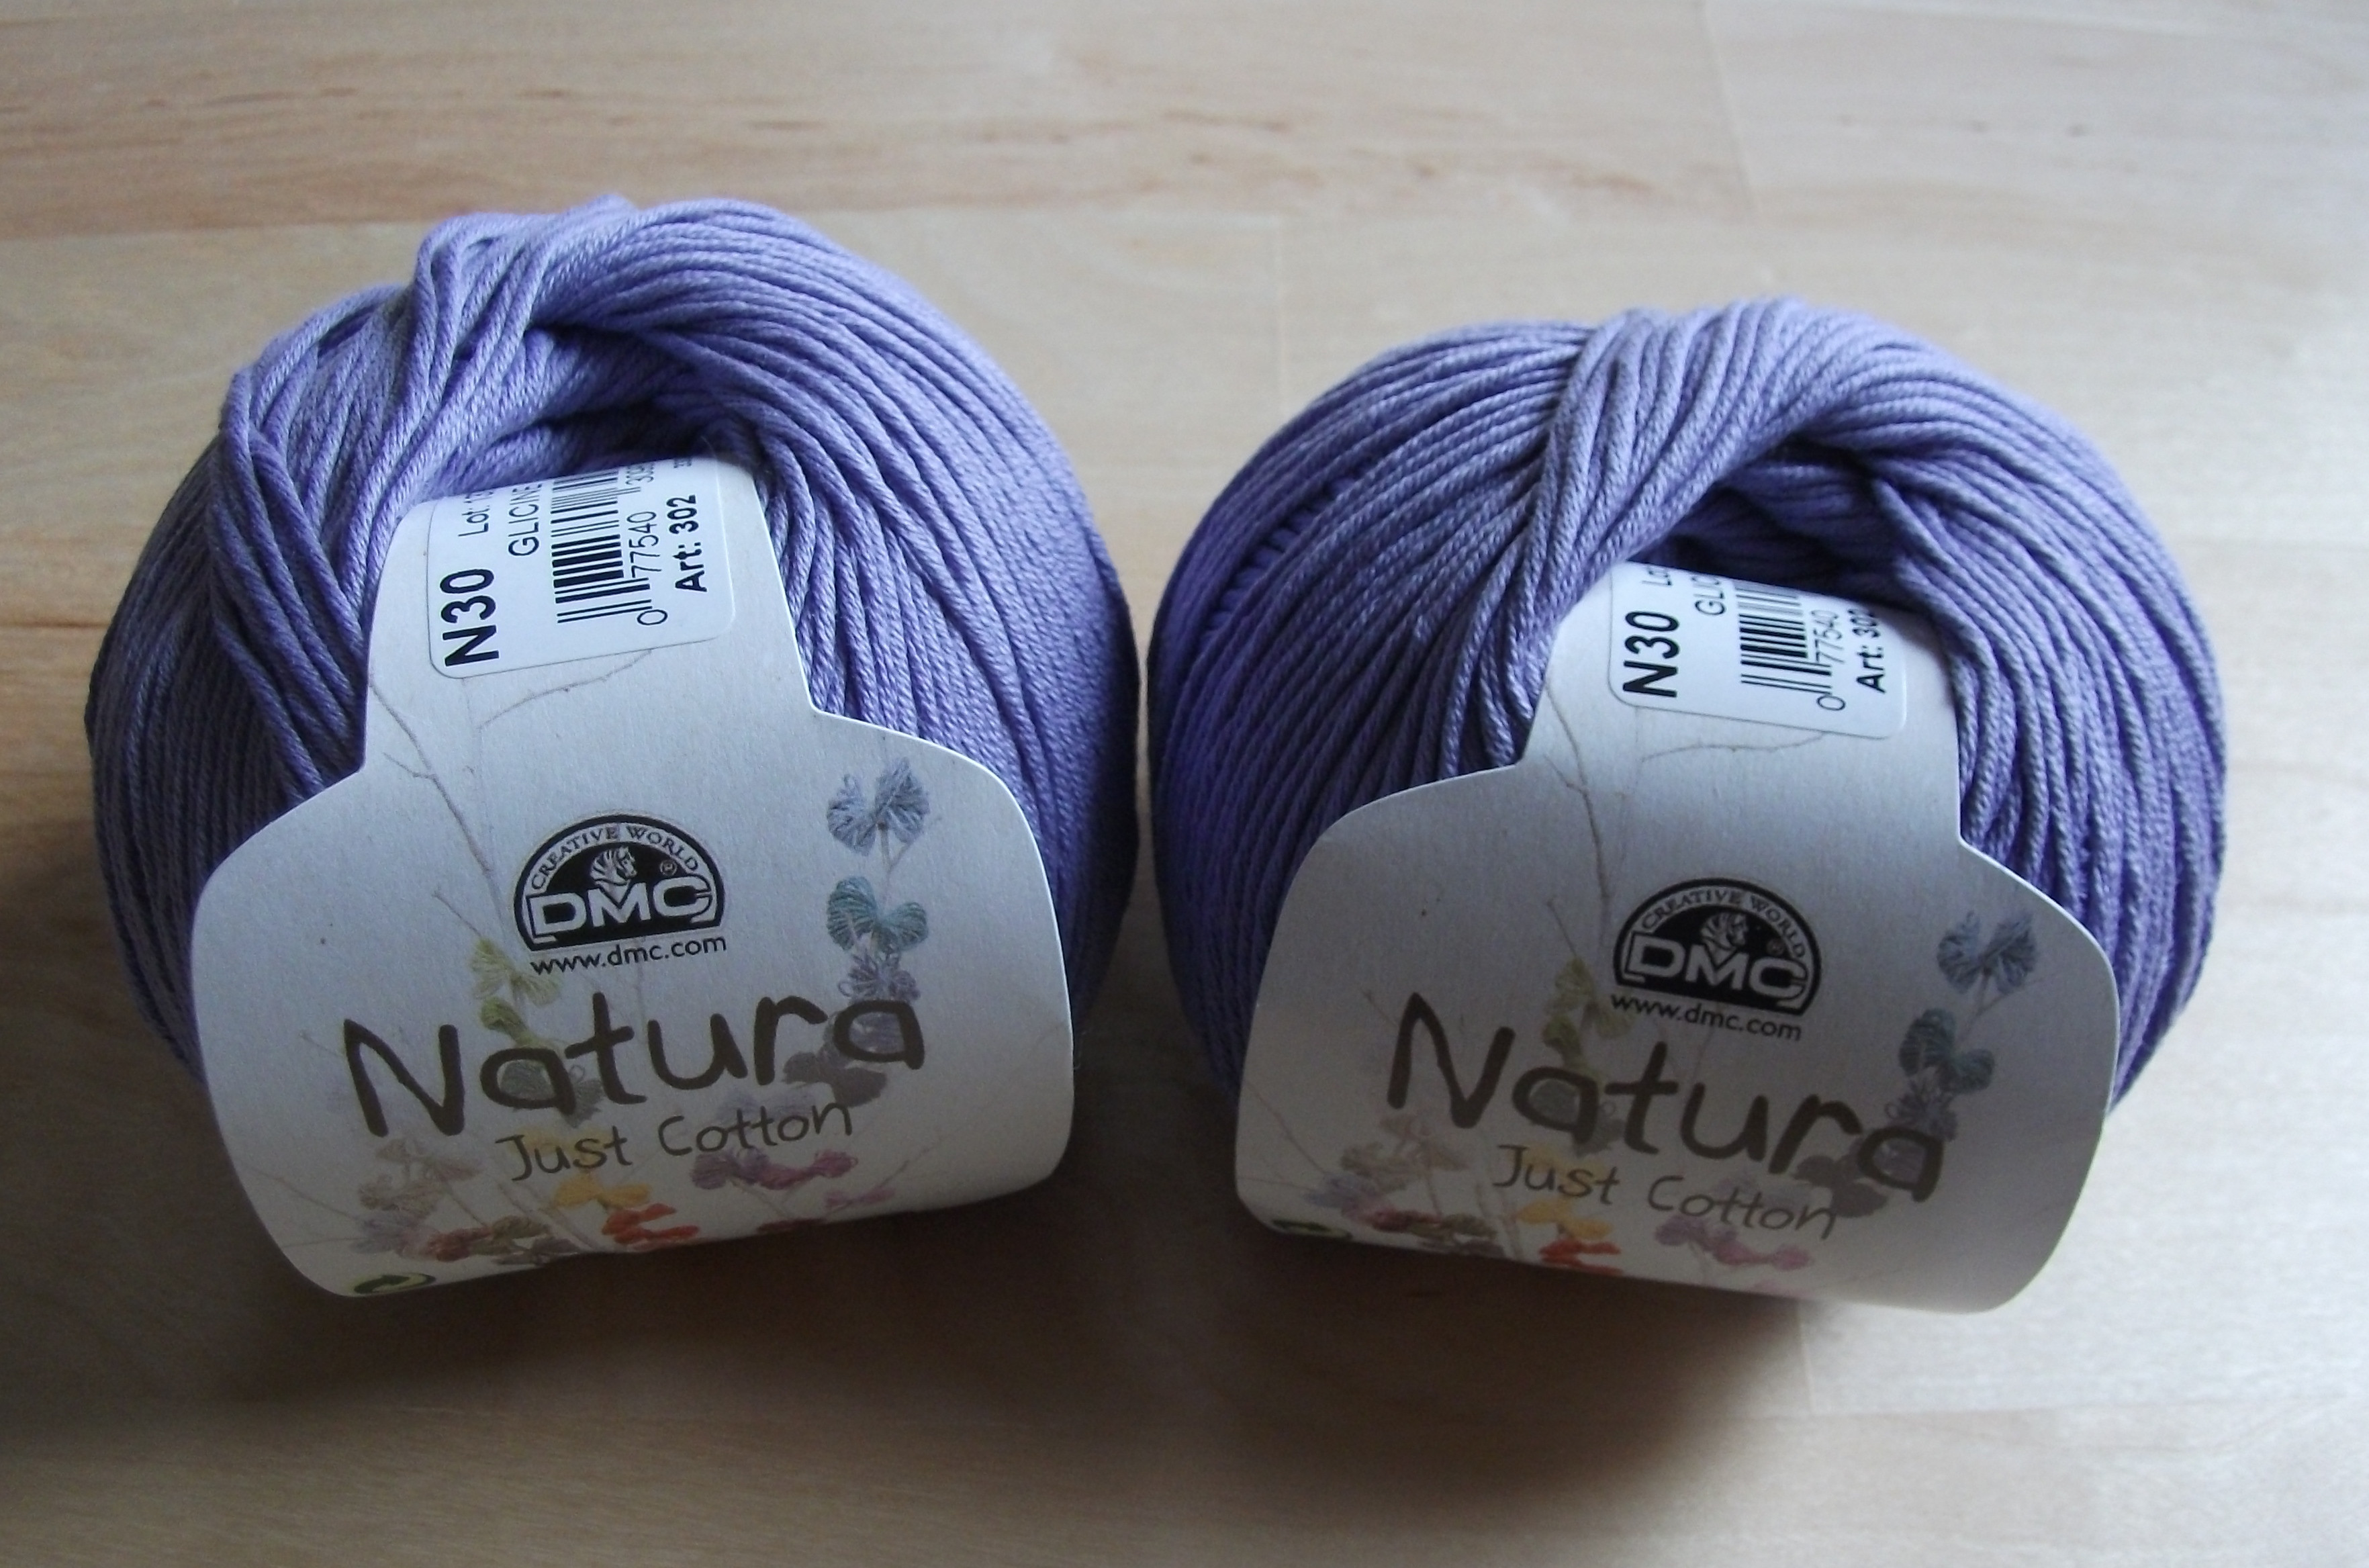 Dmc Natura Just Cotton New Yarn Review – Dmc Natura Just Cotton Of Amazing 45 Ideas Dmc Natura Just Cotton